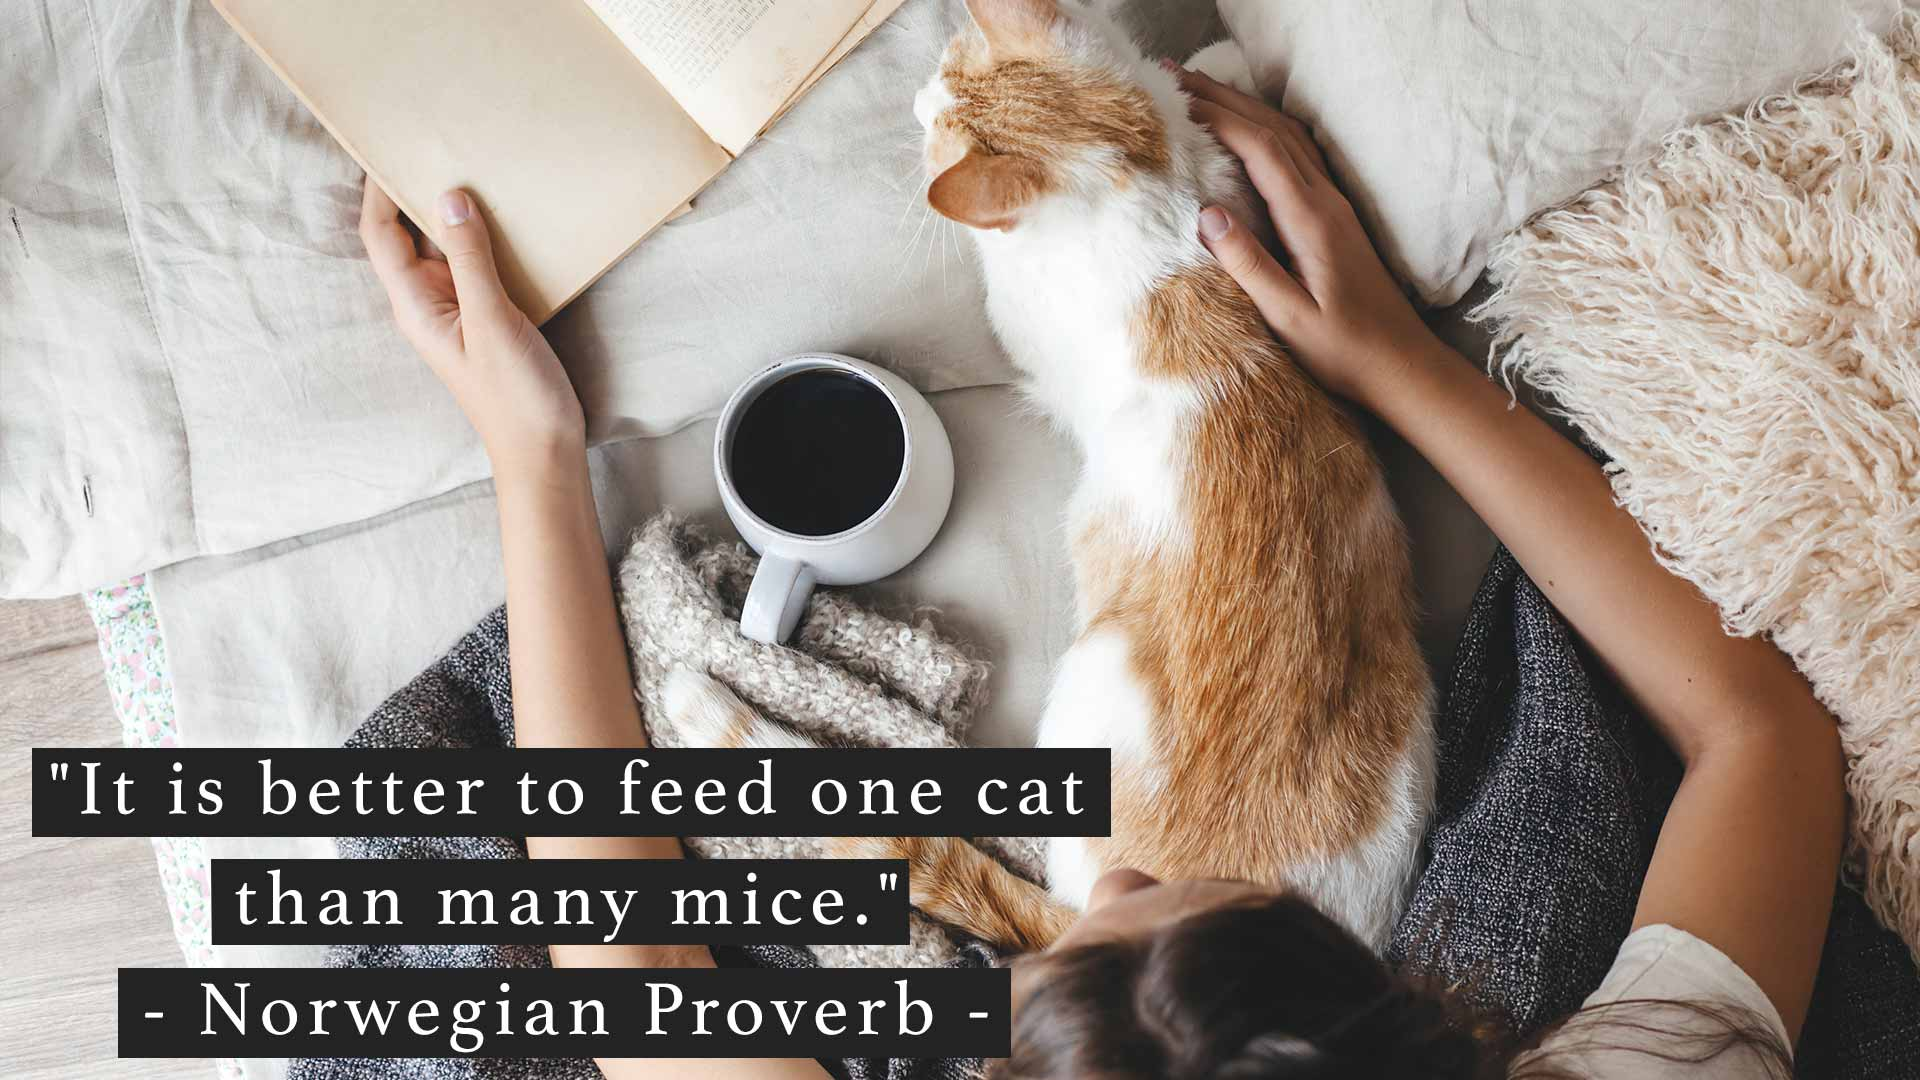 It is better to feed one cat than many mice